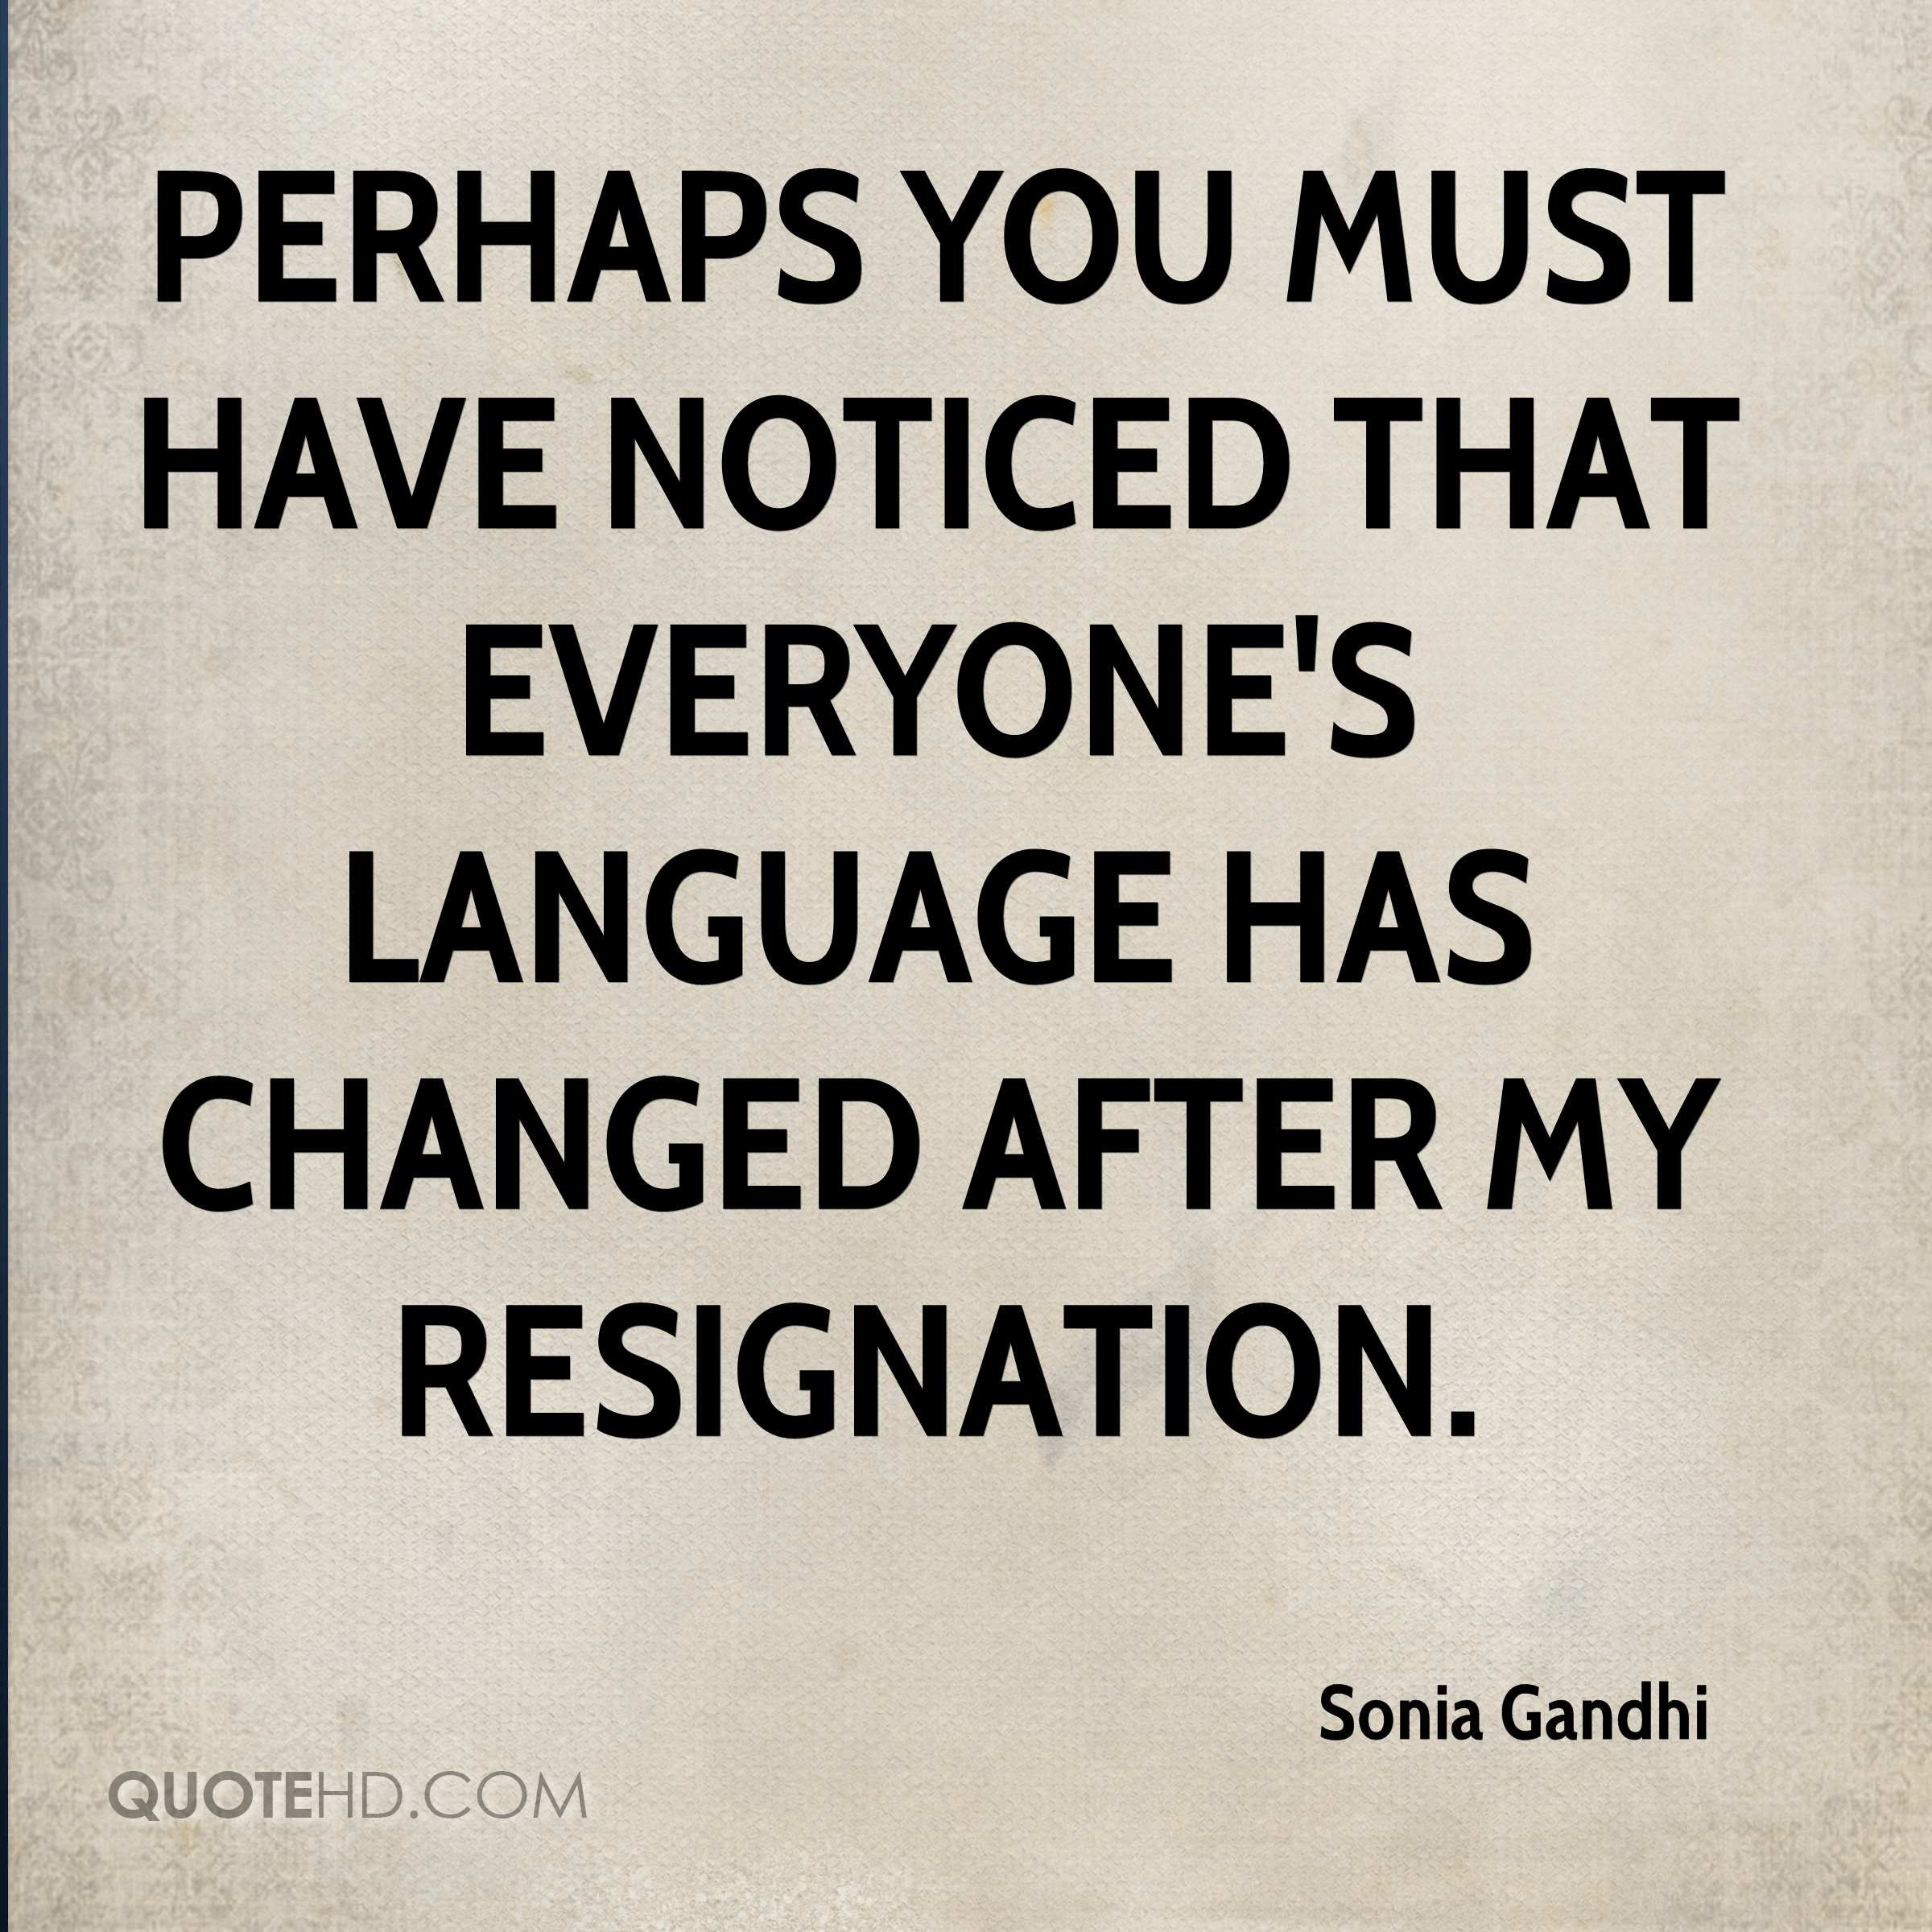 Perhaps you must have noticed that everyone's language has changed after my resignation.